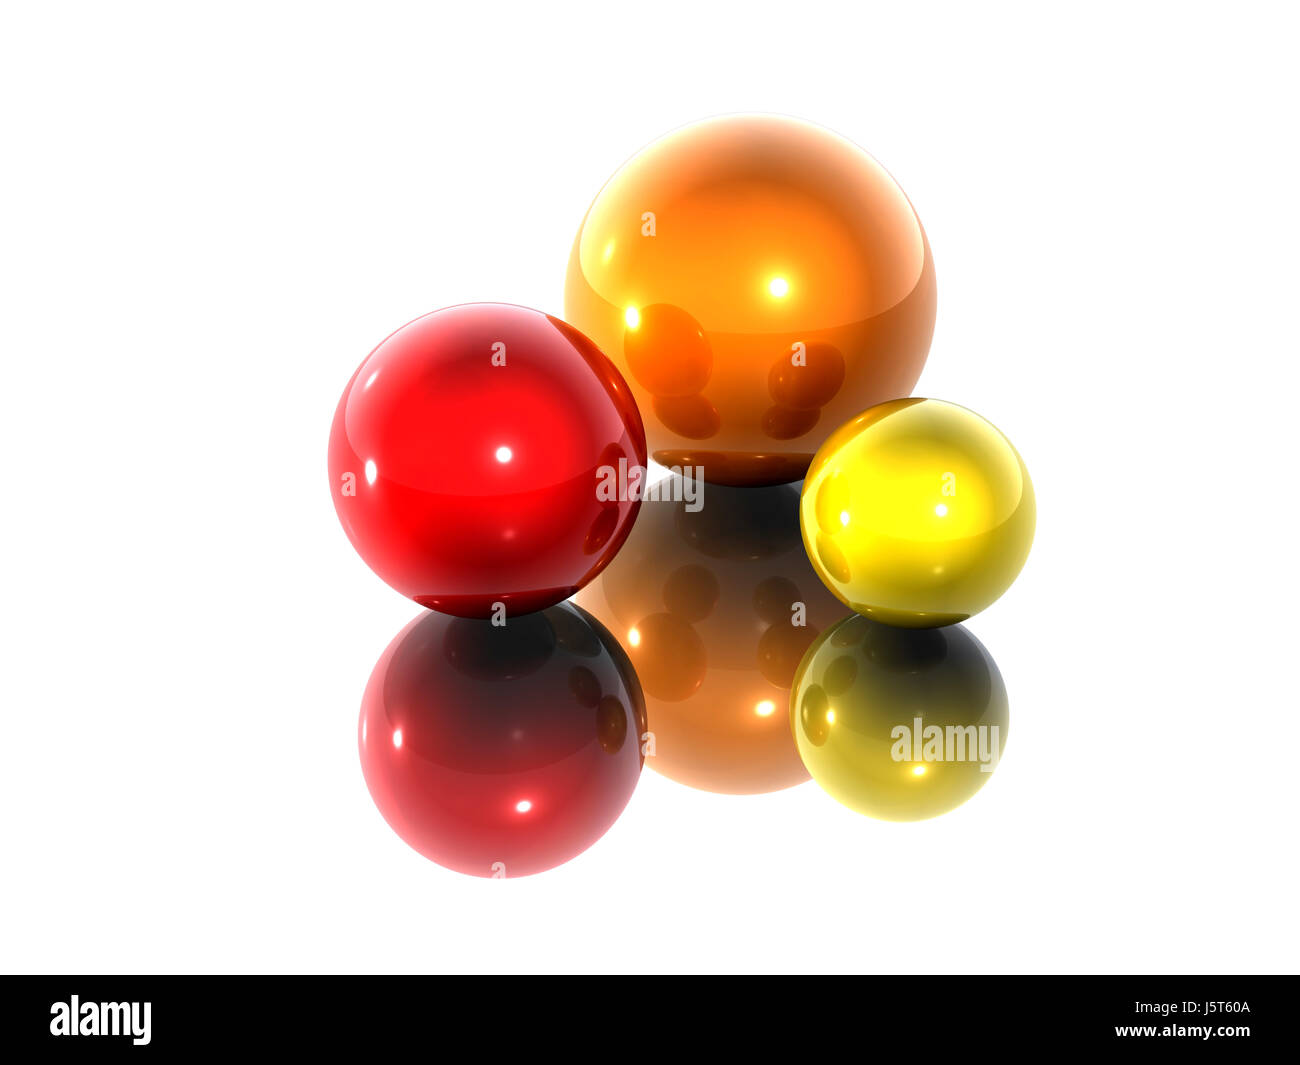 ball place 3 - Stock Image